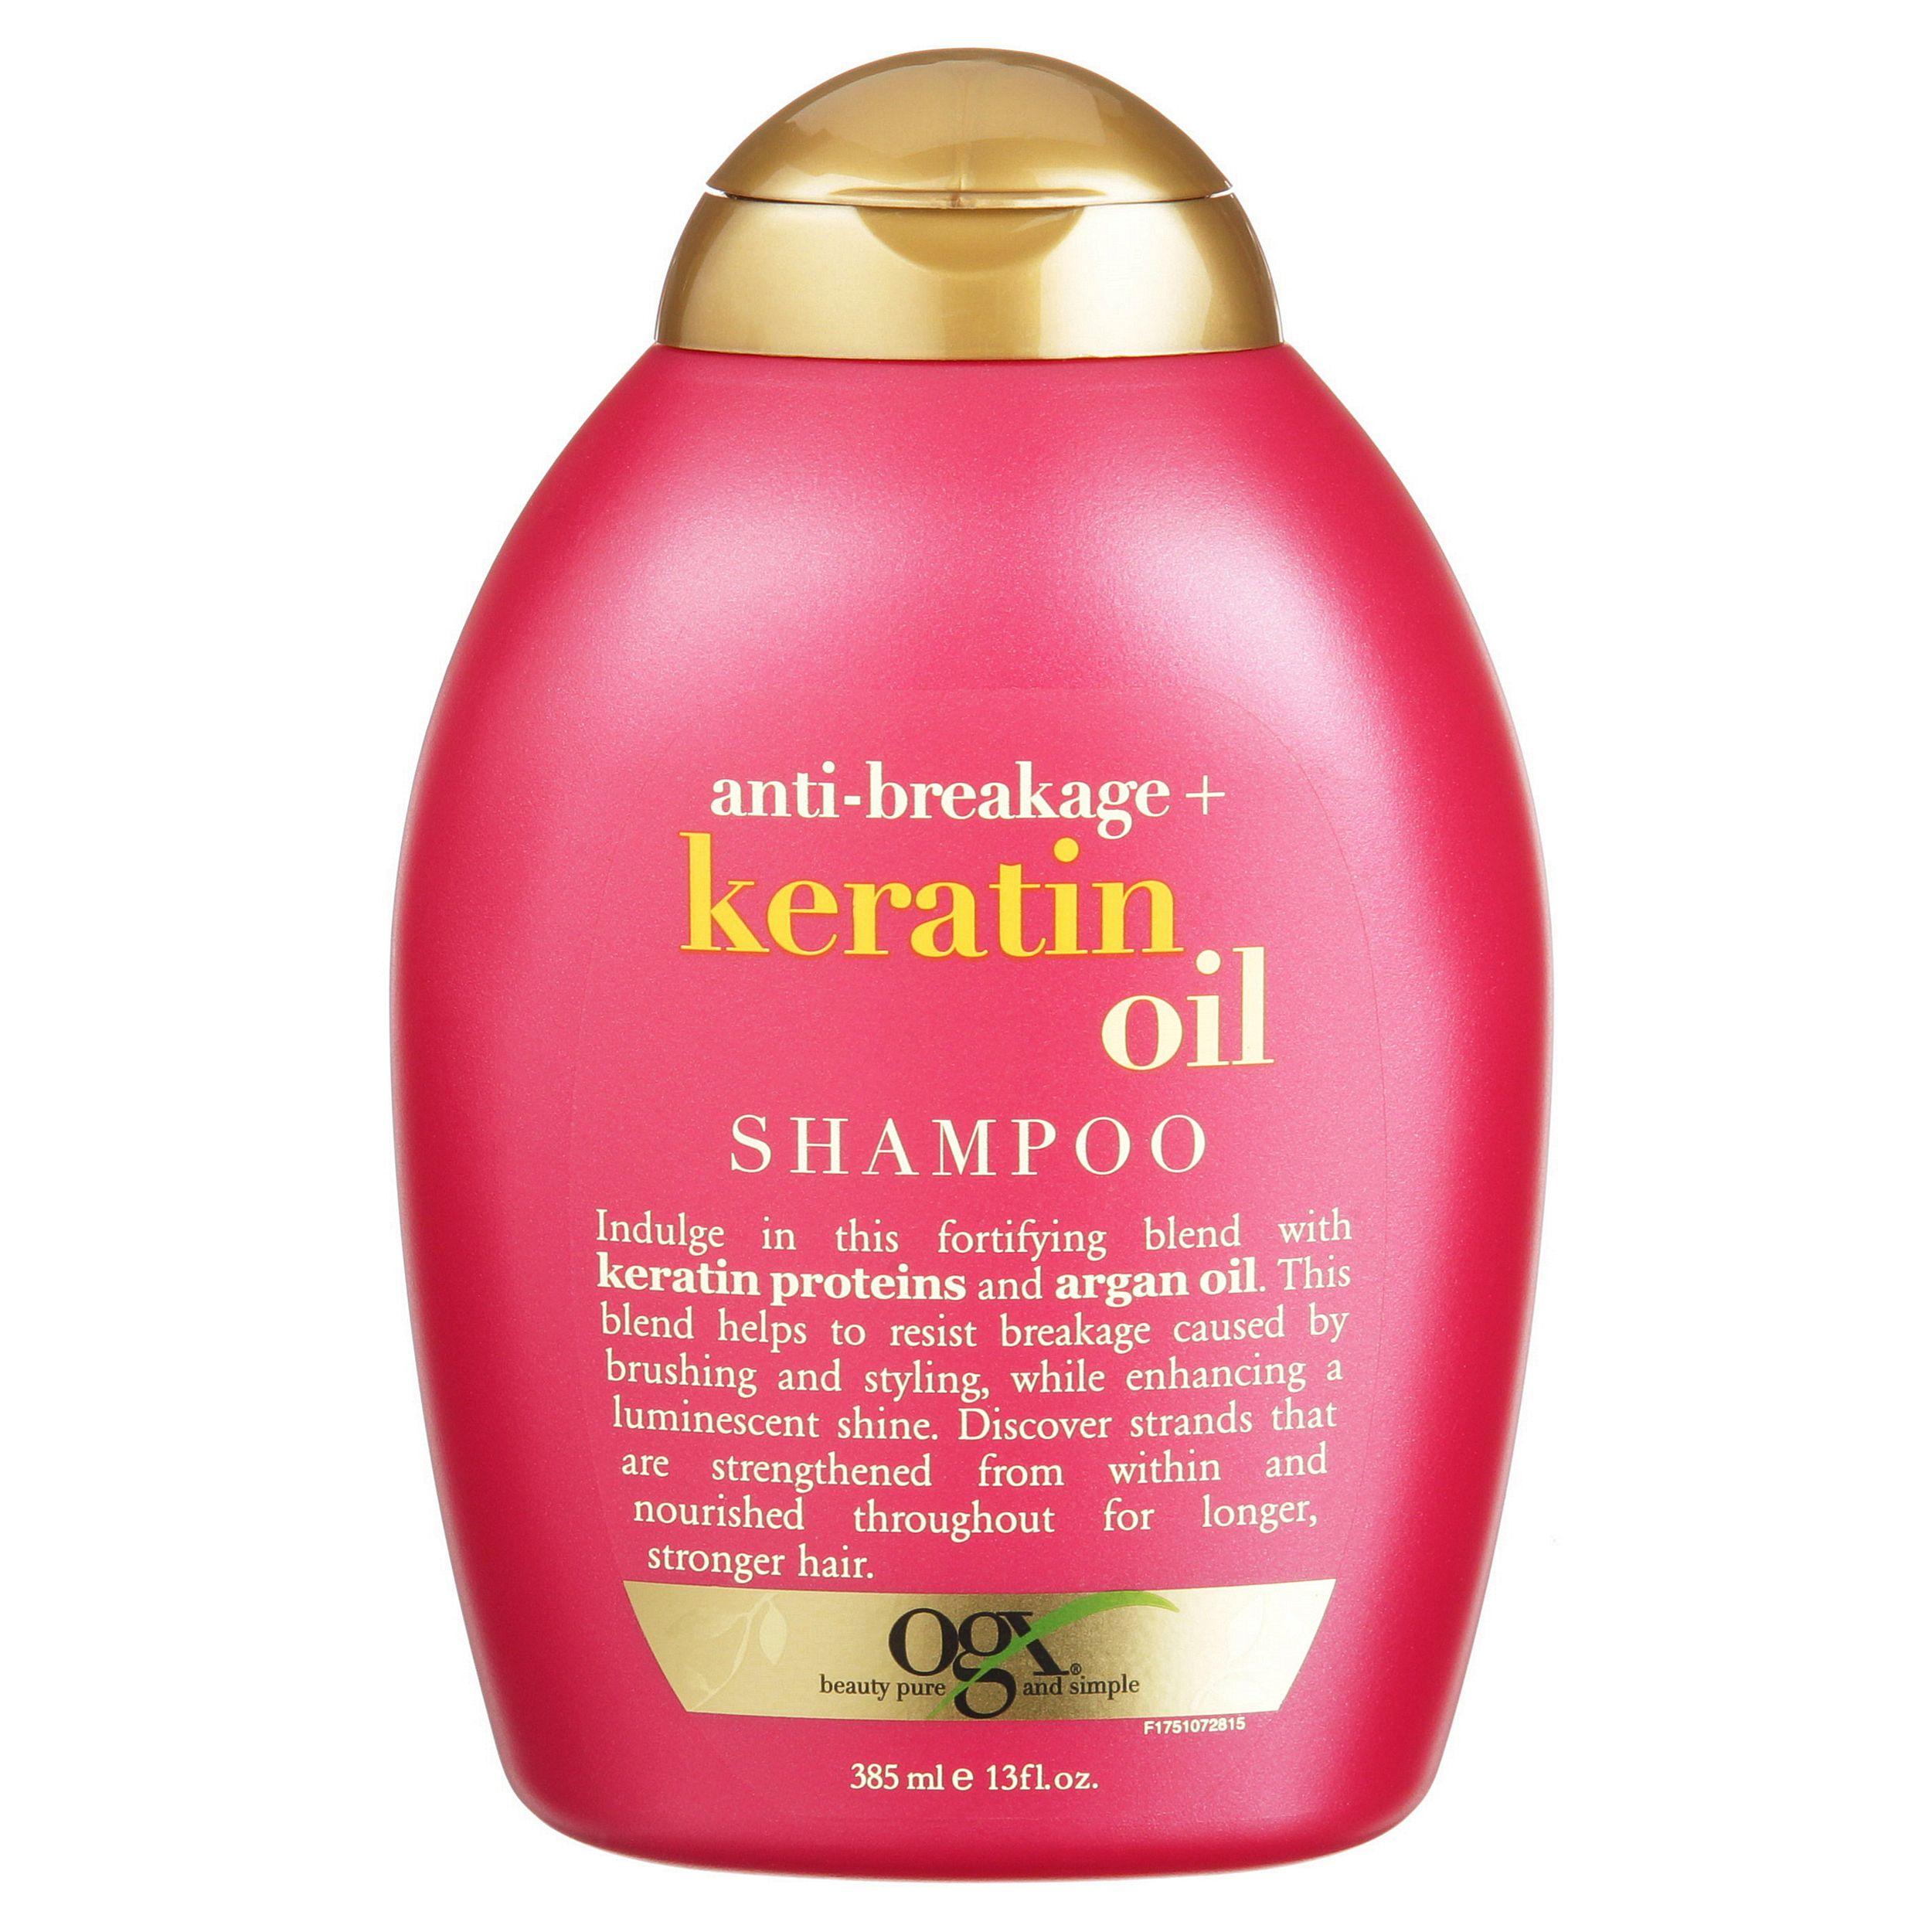 Ogx Anti Breakage Keratin Oil Fortifying Anti Frizz Shampoo For Damaged Hair Split Ends With Keratin Proteins Argan Oil Paraben Free Sulfate Free Surfa Keratin Oil Ogx Shampoo Anti Frizz Shampoo